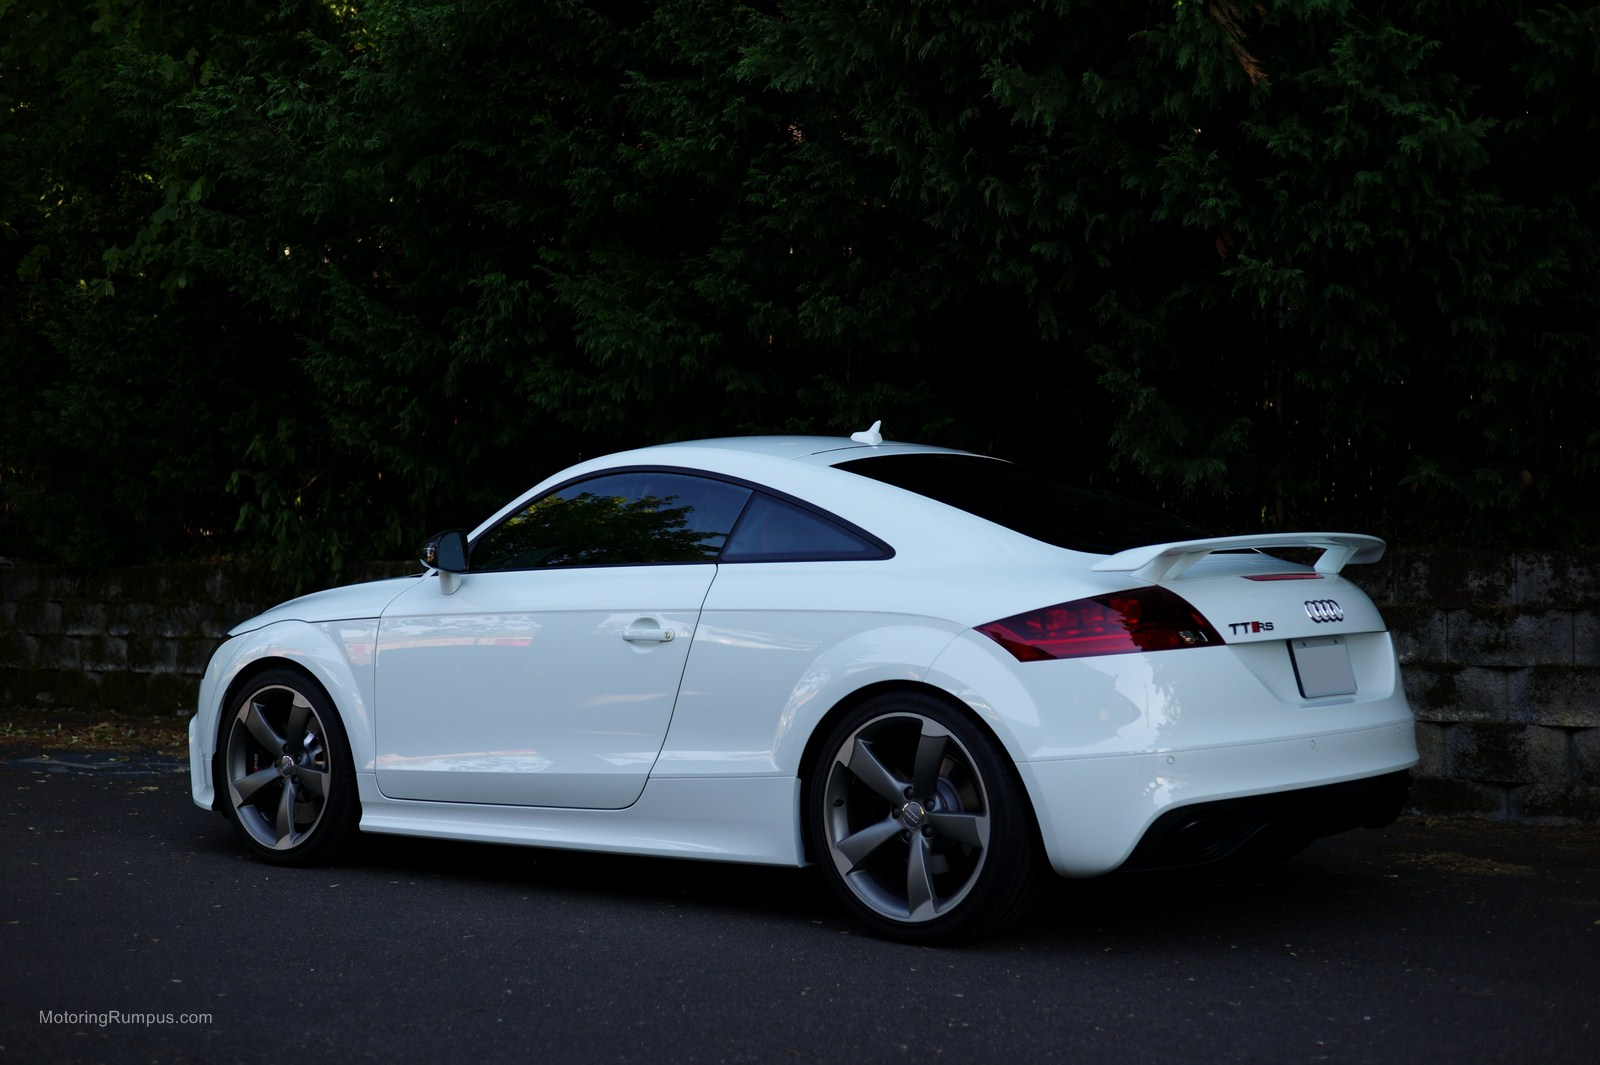 2013 Audi TT RS Review - Motoring Rumpus